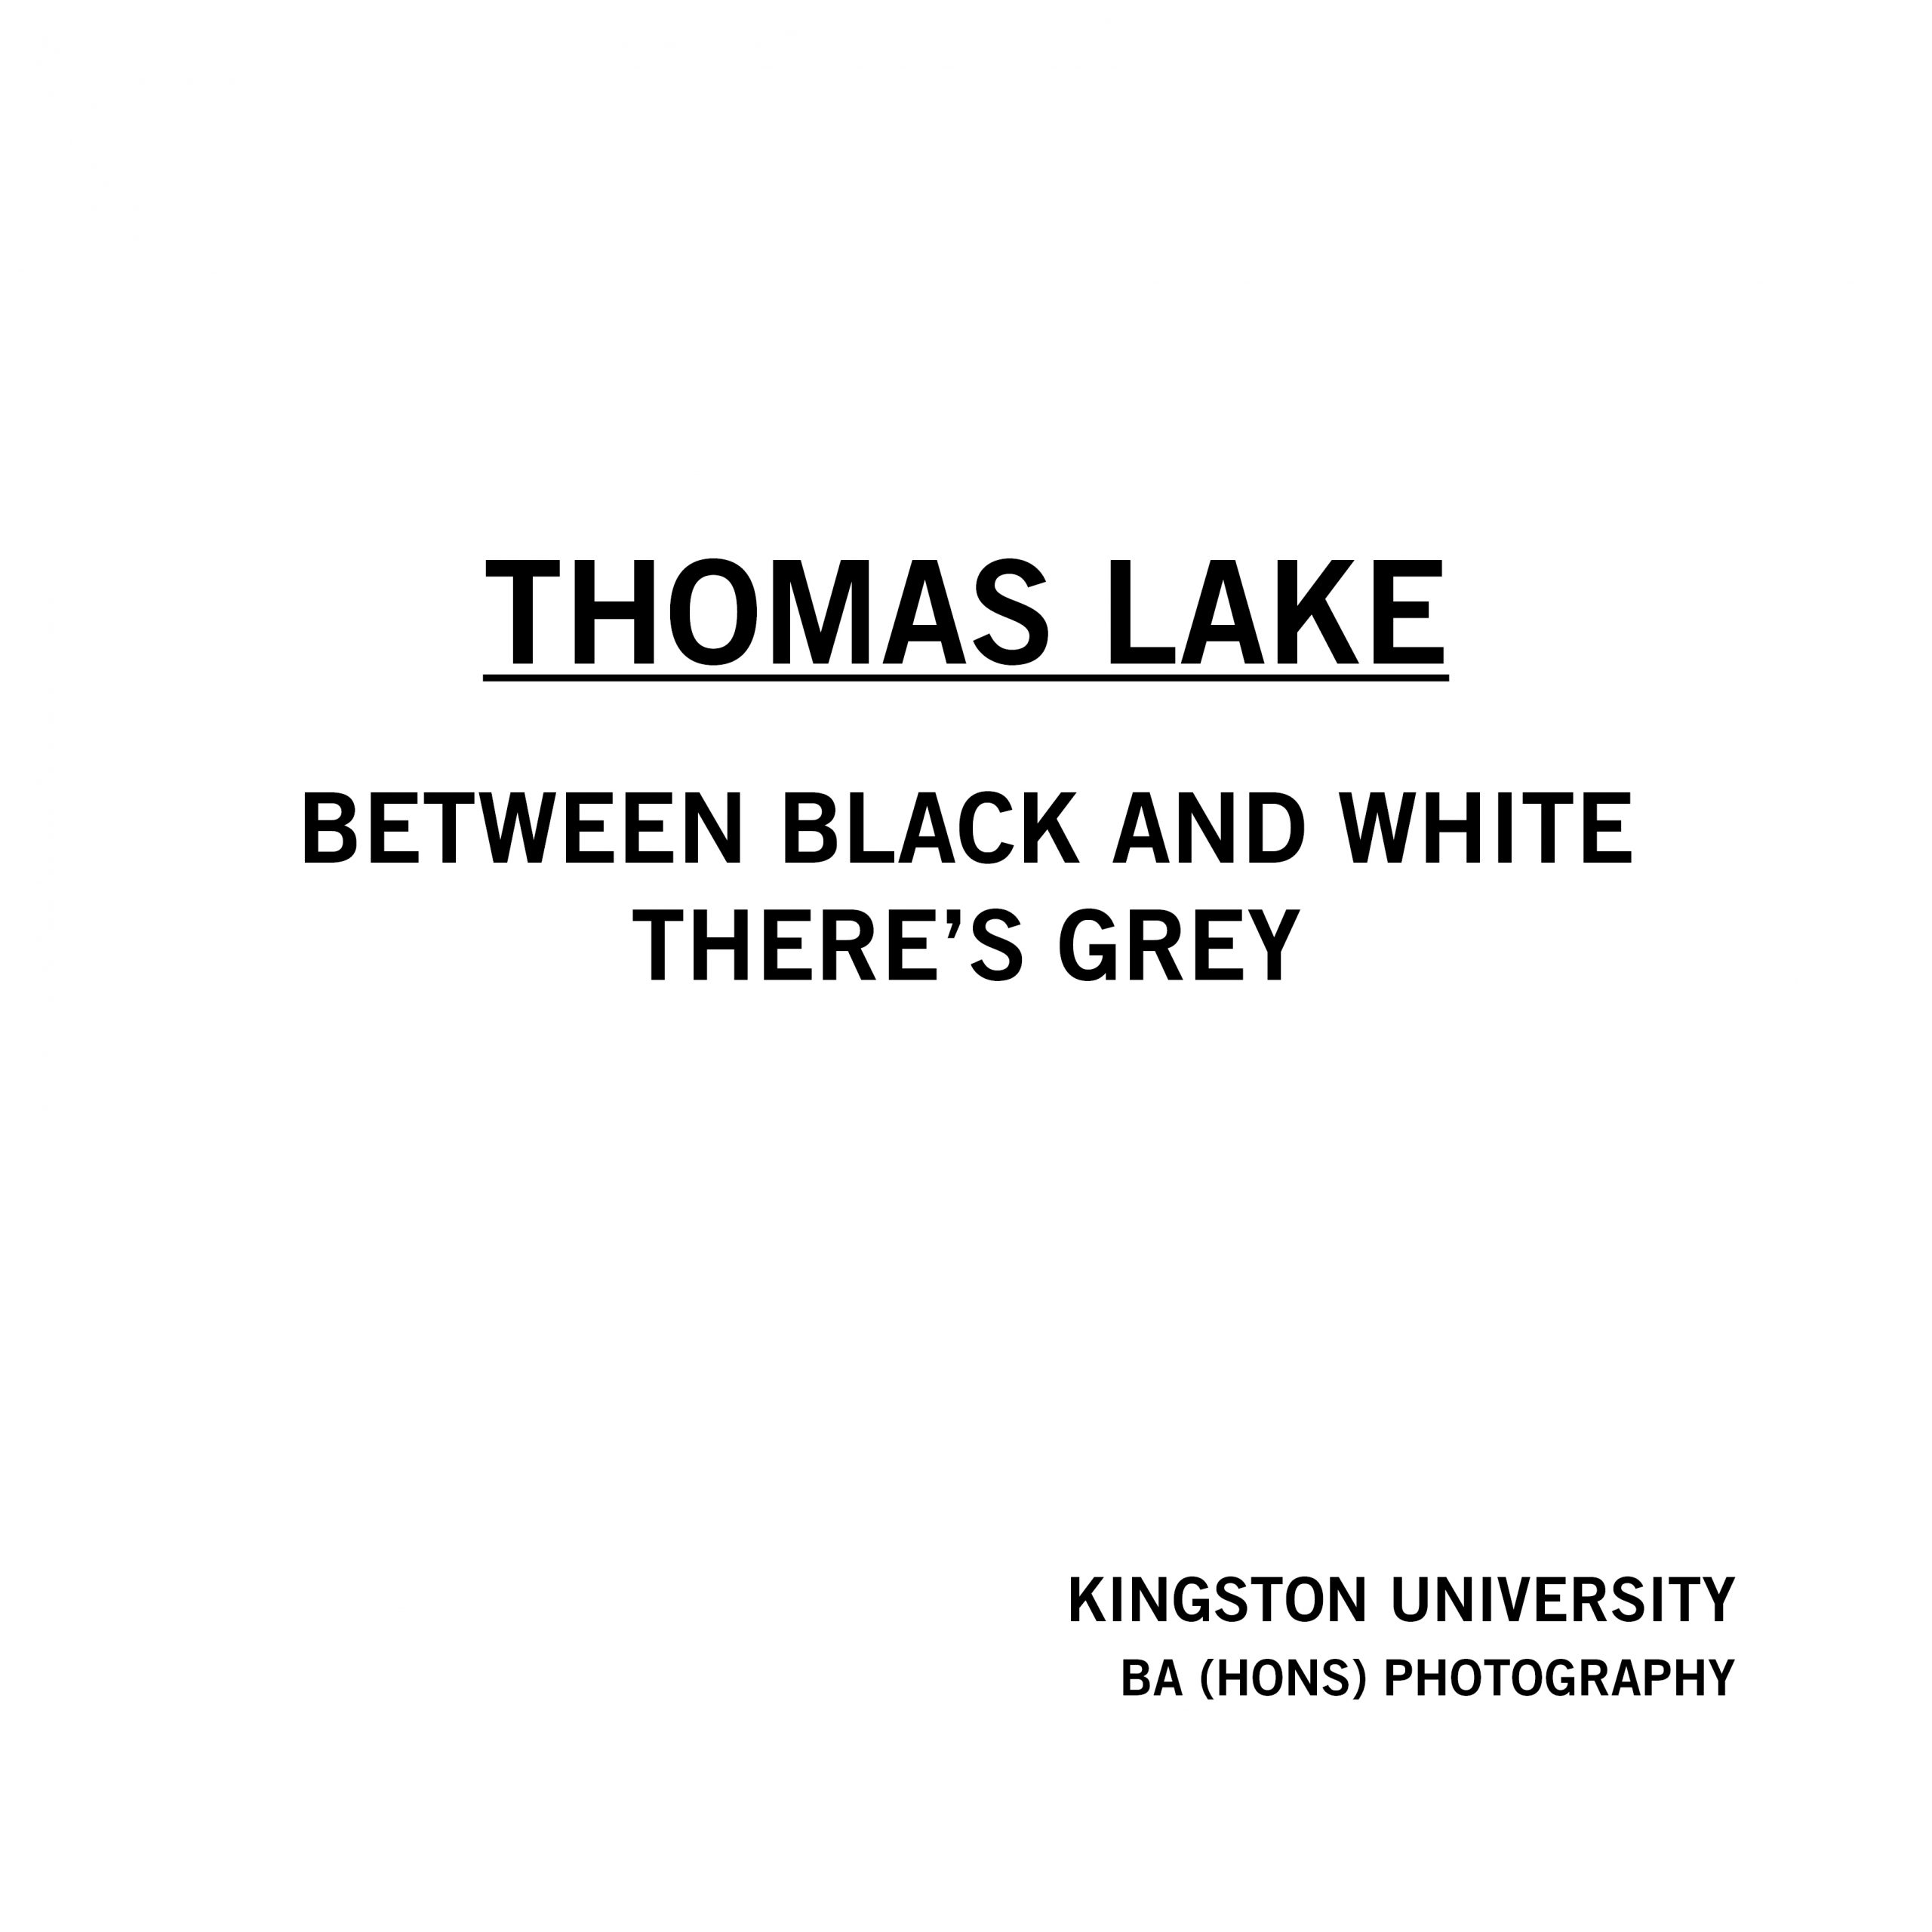 Thomas Lake - Between Black and White There's Grey